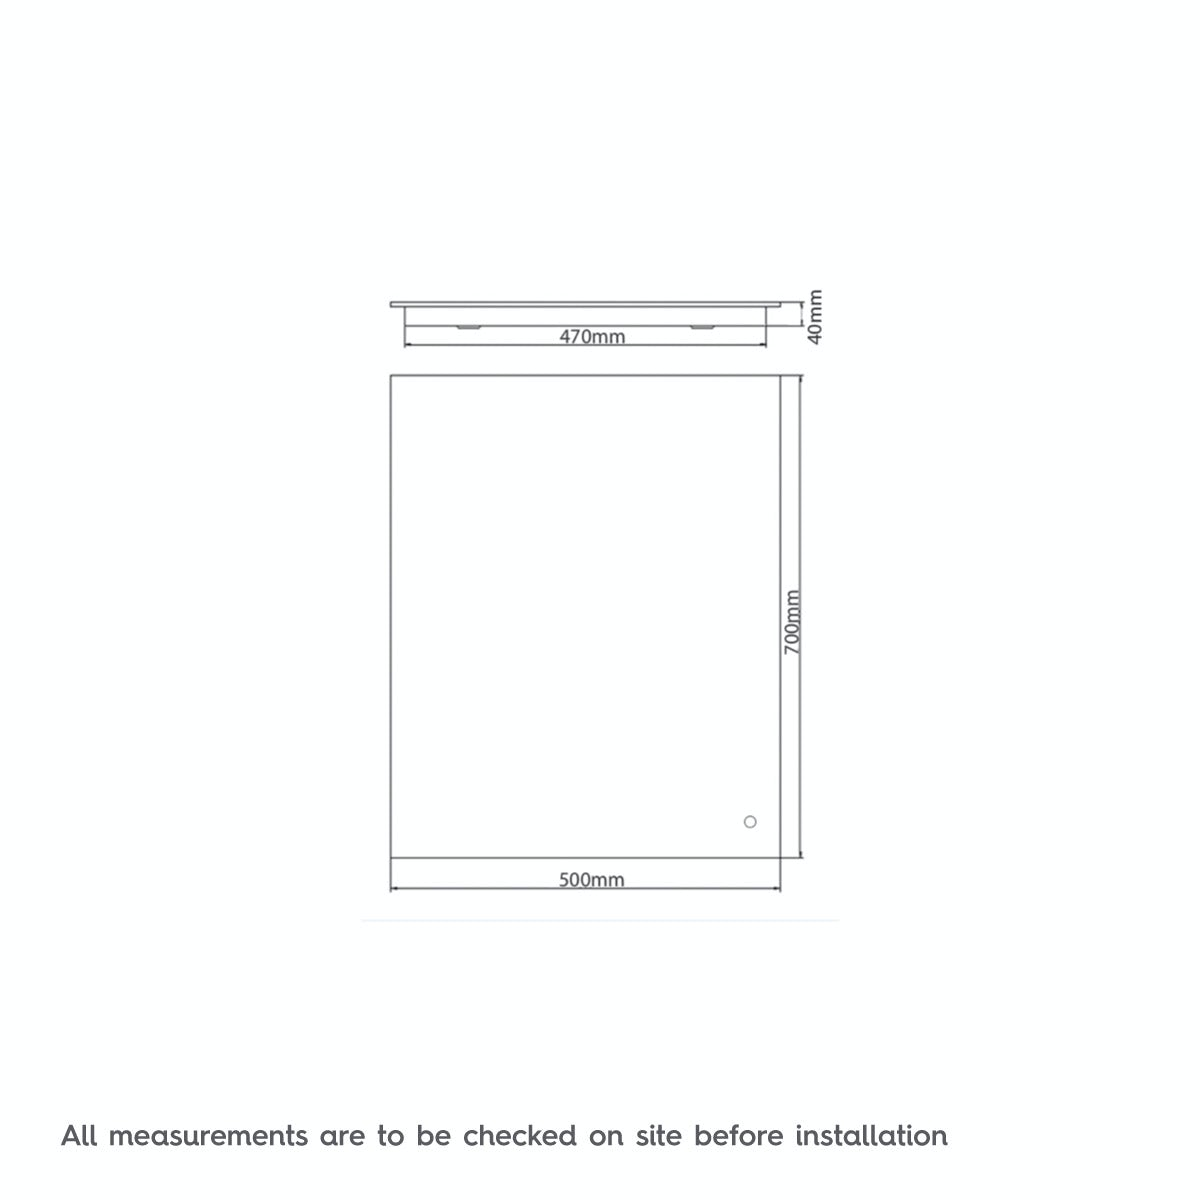 Dimensions for Mode Lumina variable white backlit mirror